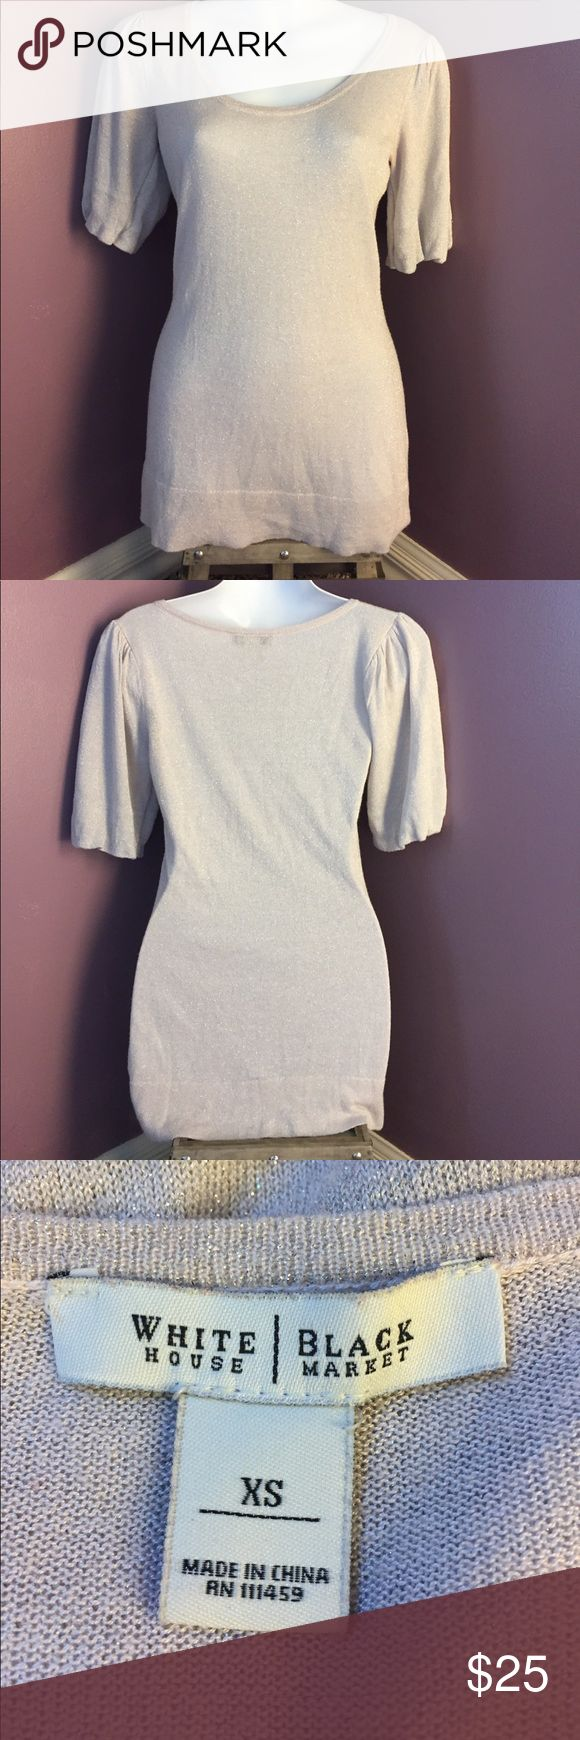 White House Black Market Silver Short Sleeve Top White House Black Market Silver scoop neck Knit Top. Sleeves have some gathering at the top and around the cuff. Measures 15 1/2 inches at bust and 27 inches from shoulder to hem. ❤️ Bundle and save!❤️ Excellent used condition 😊 White House Black Market Tops